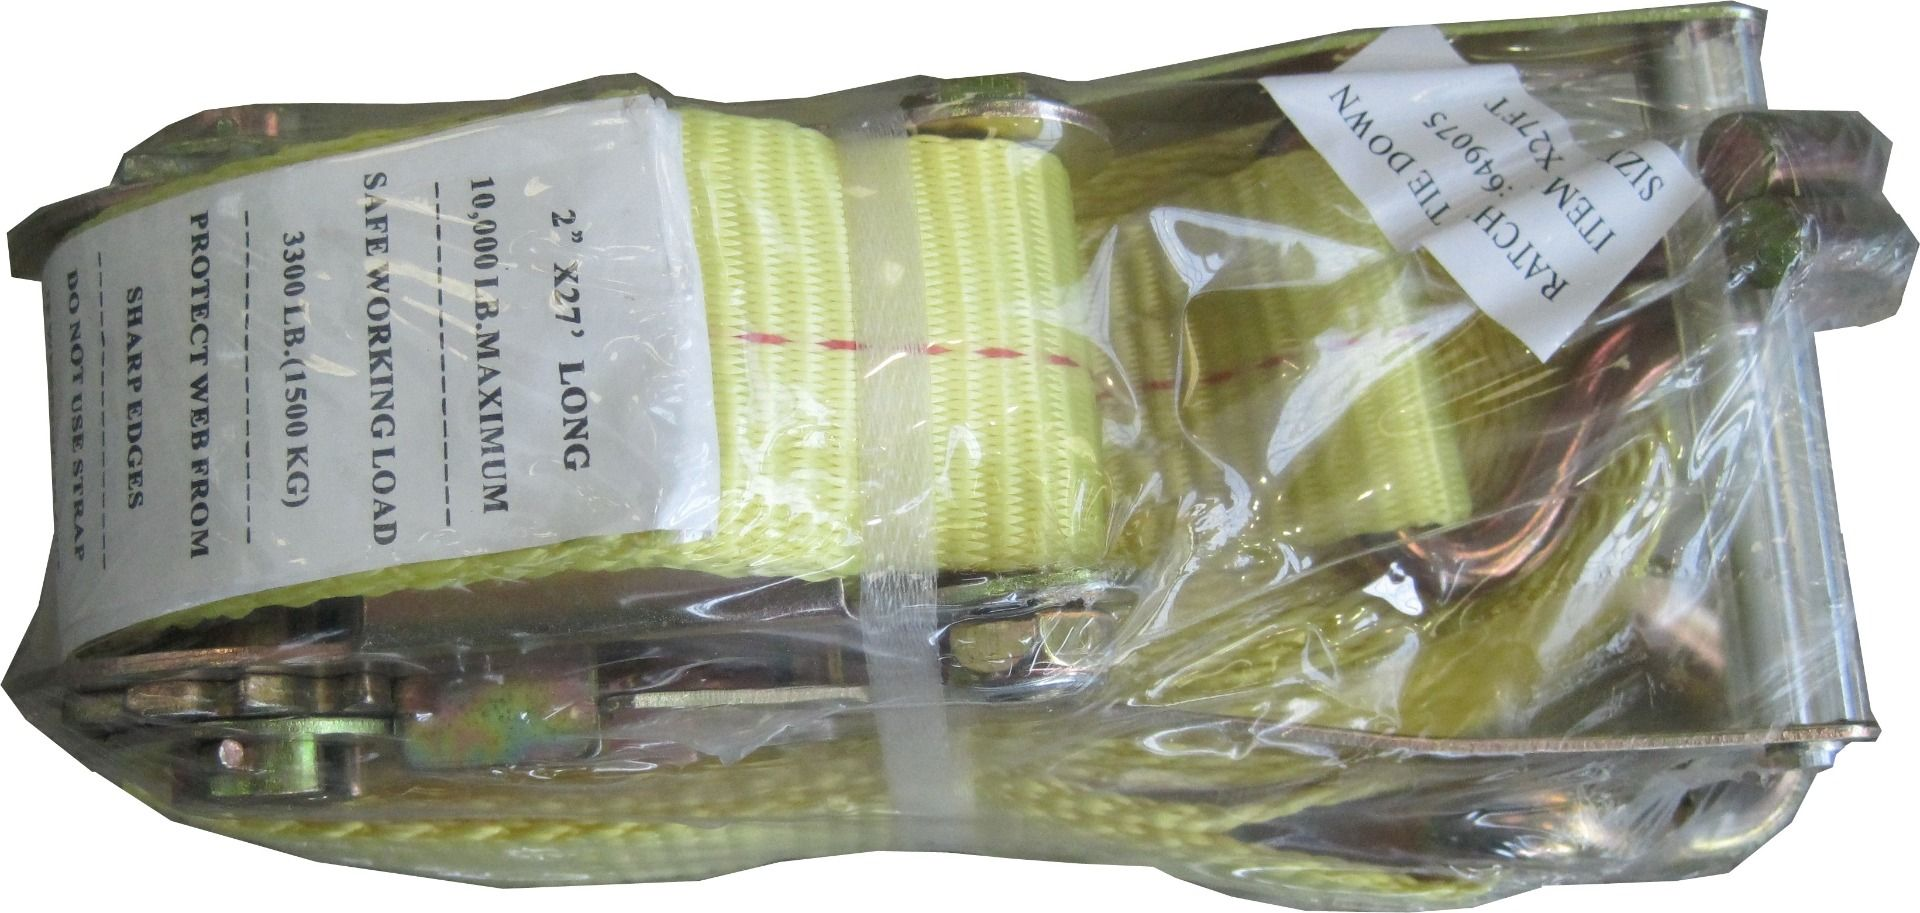 Yellow Ratchet Strap 2 inches x 27 feet long